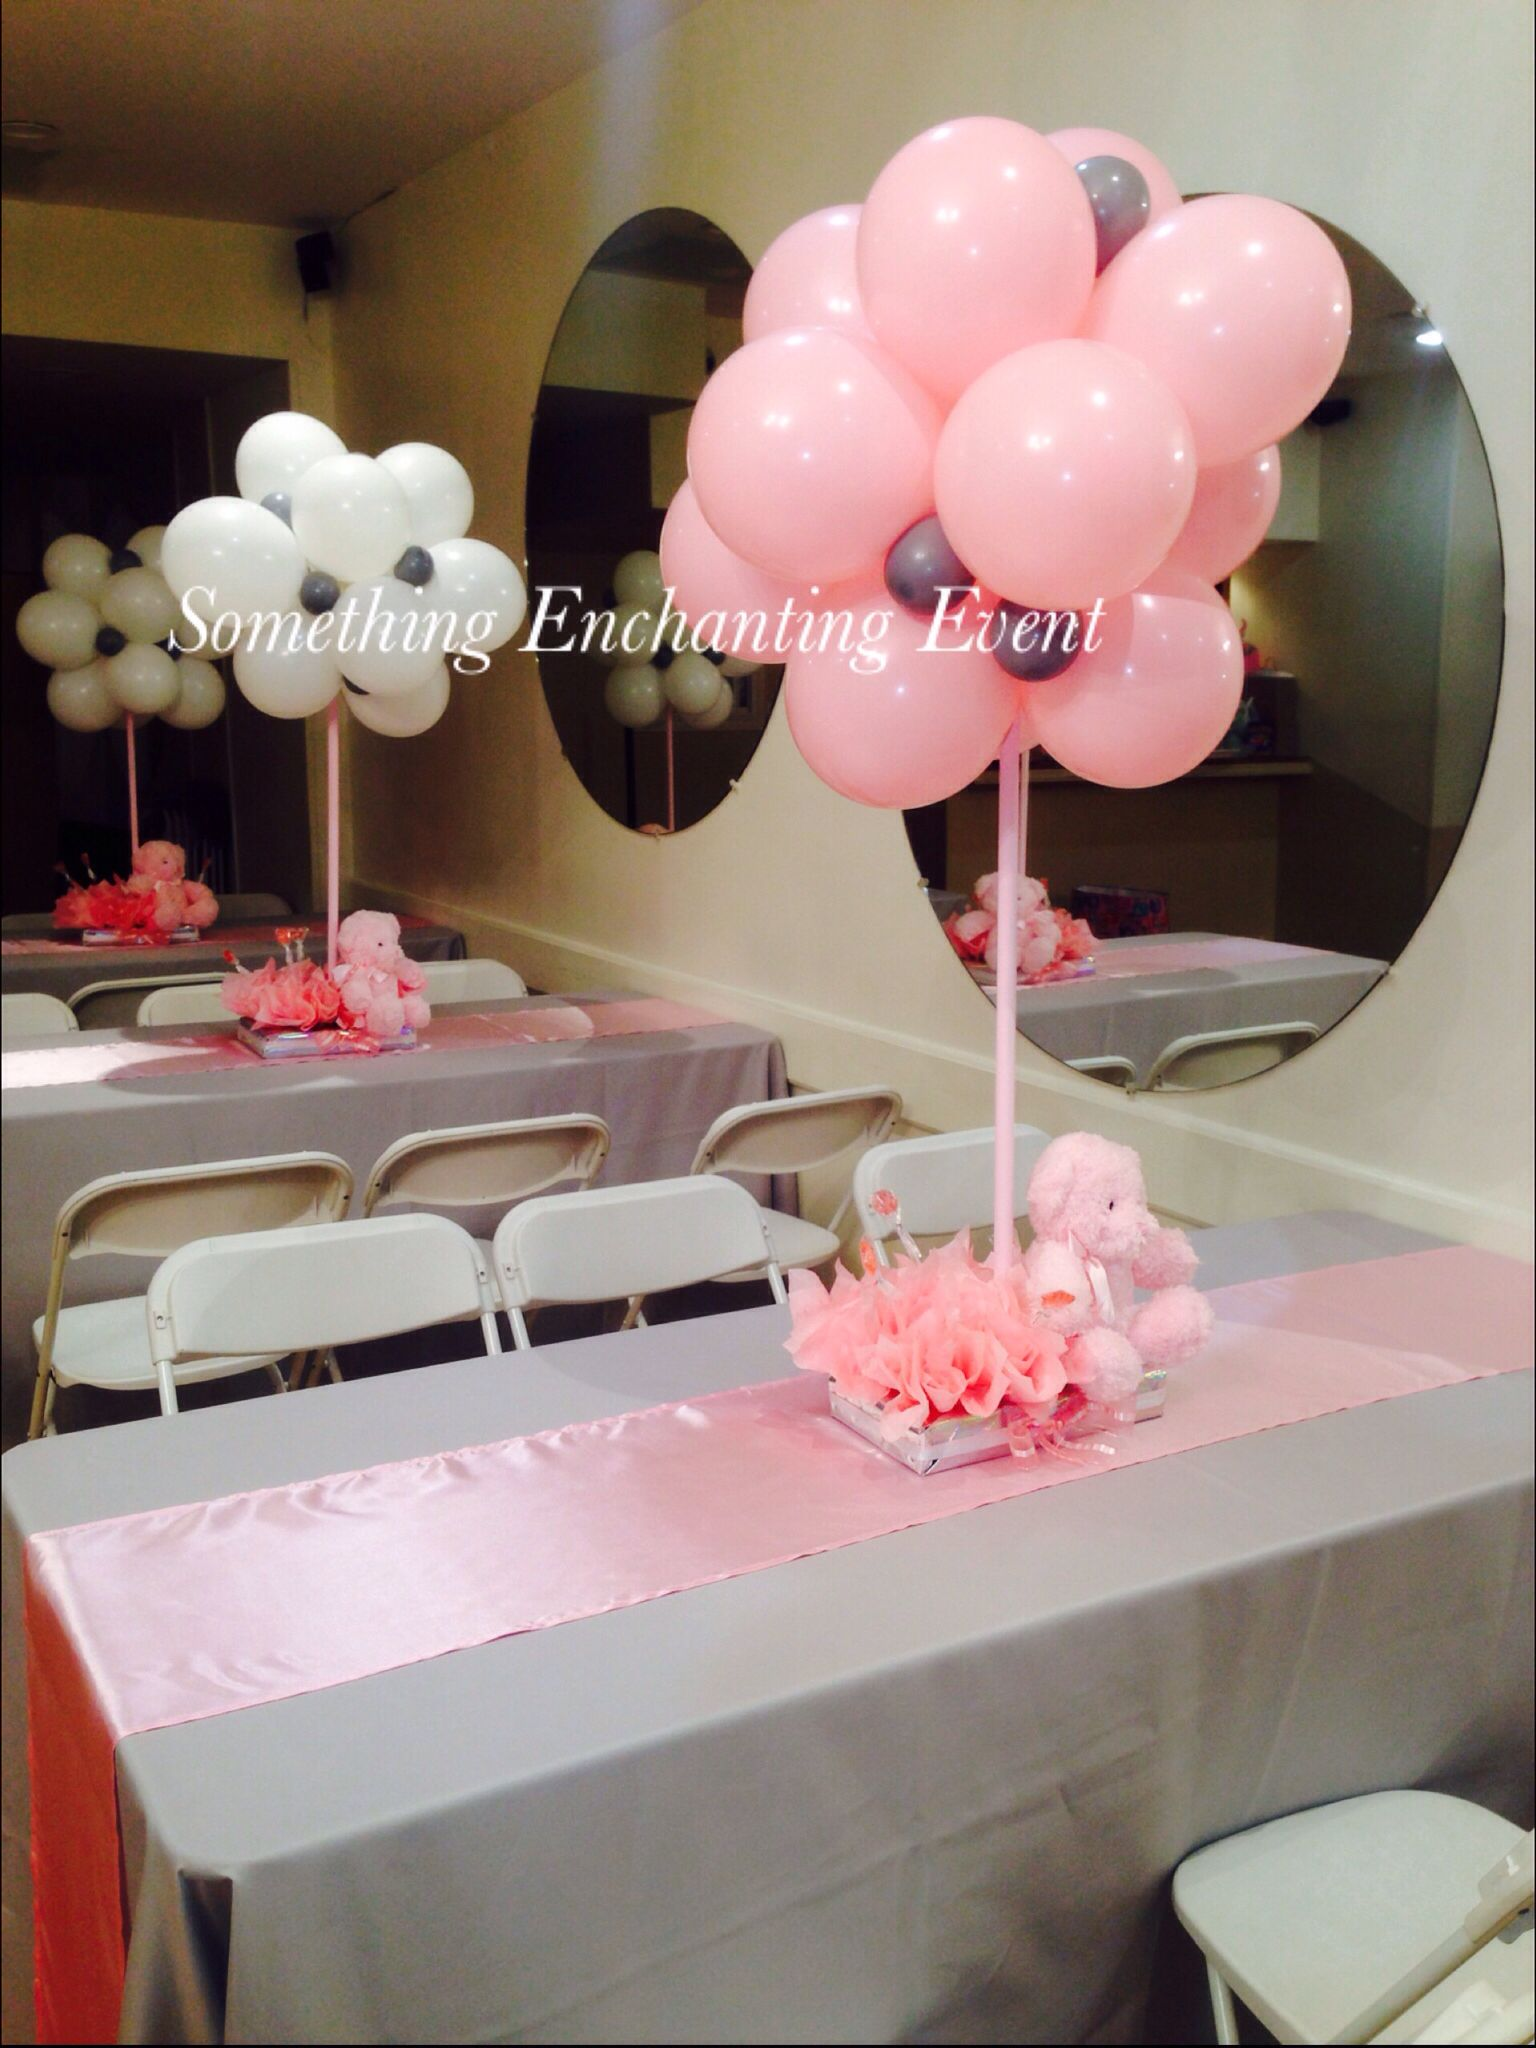 Silver Tablecloths With Pink Runner And Balloon Topiary Teddy Bear Centerpieces